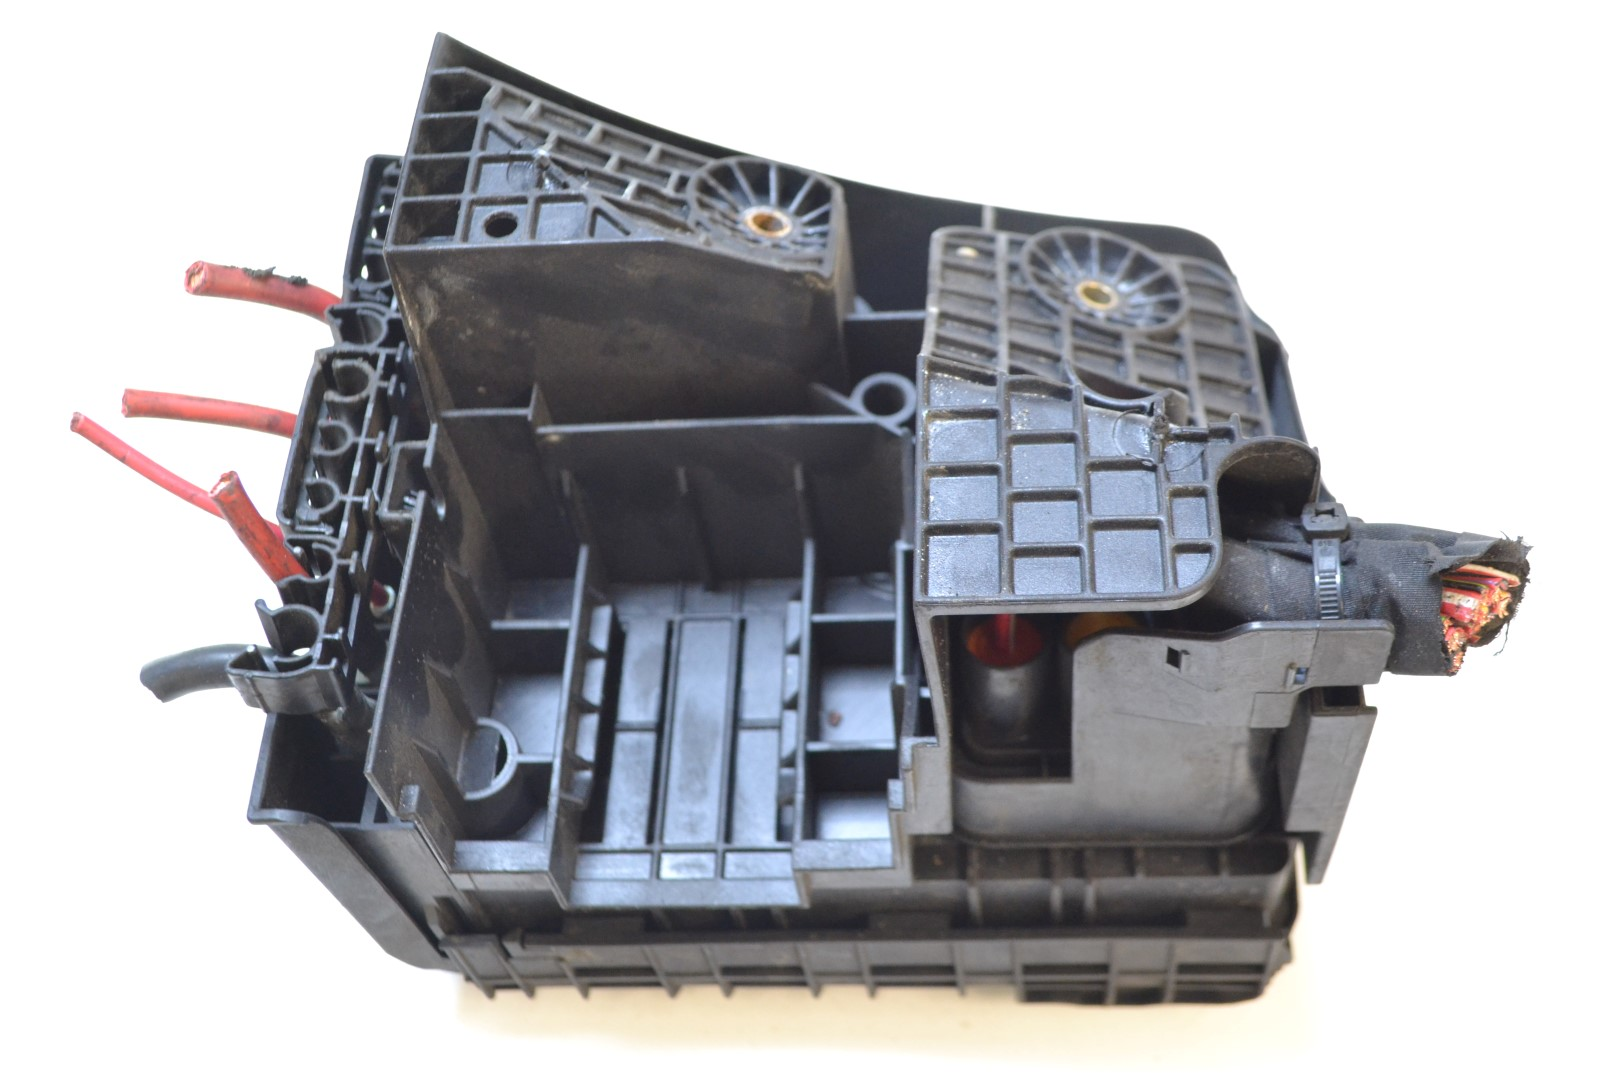 hight resolution of details about vw golf mk5 1 9 tdi 2006 rhd relay fuse box with cover lid 1k0937132